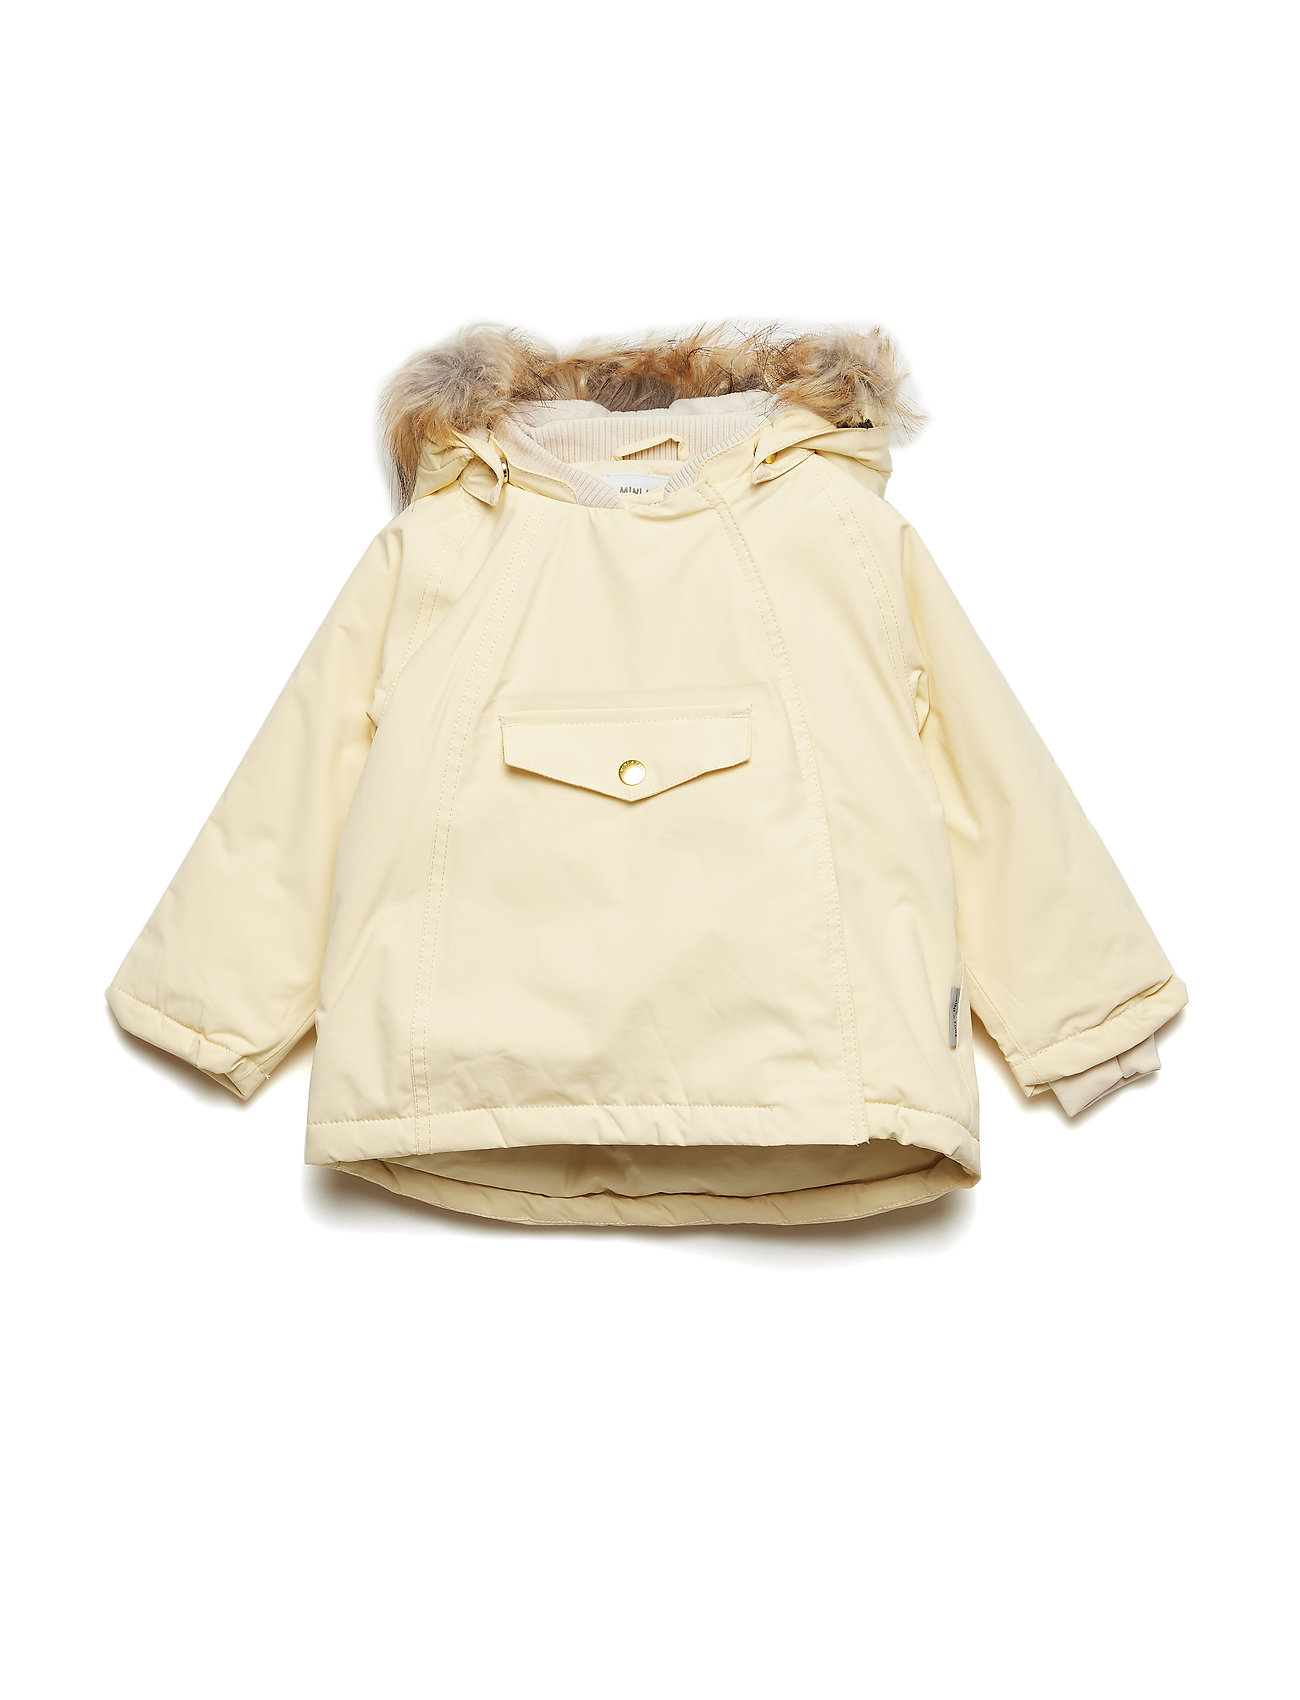 Wang Faux Fur Jacket, M Foret Jakke Gul Mini A Ture